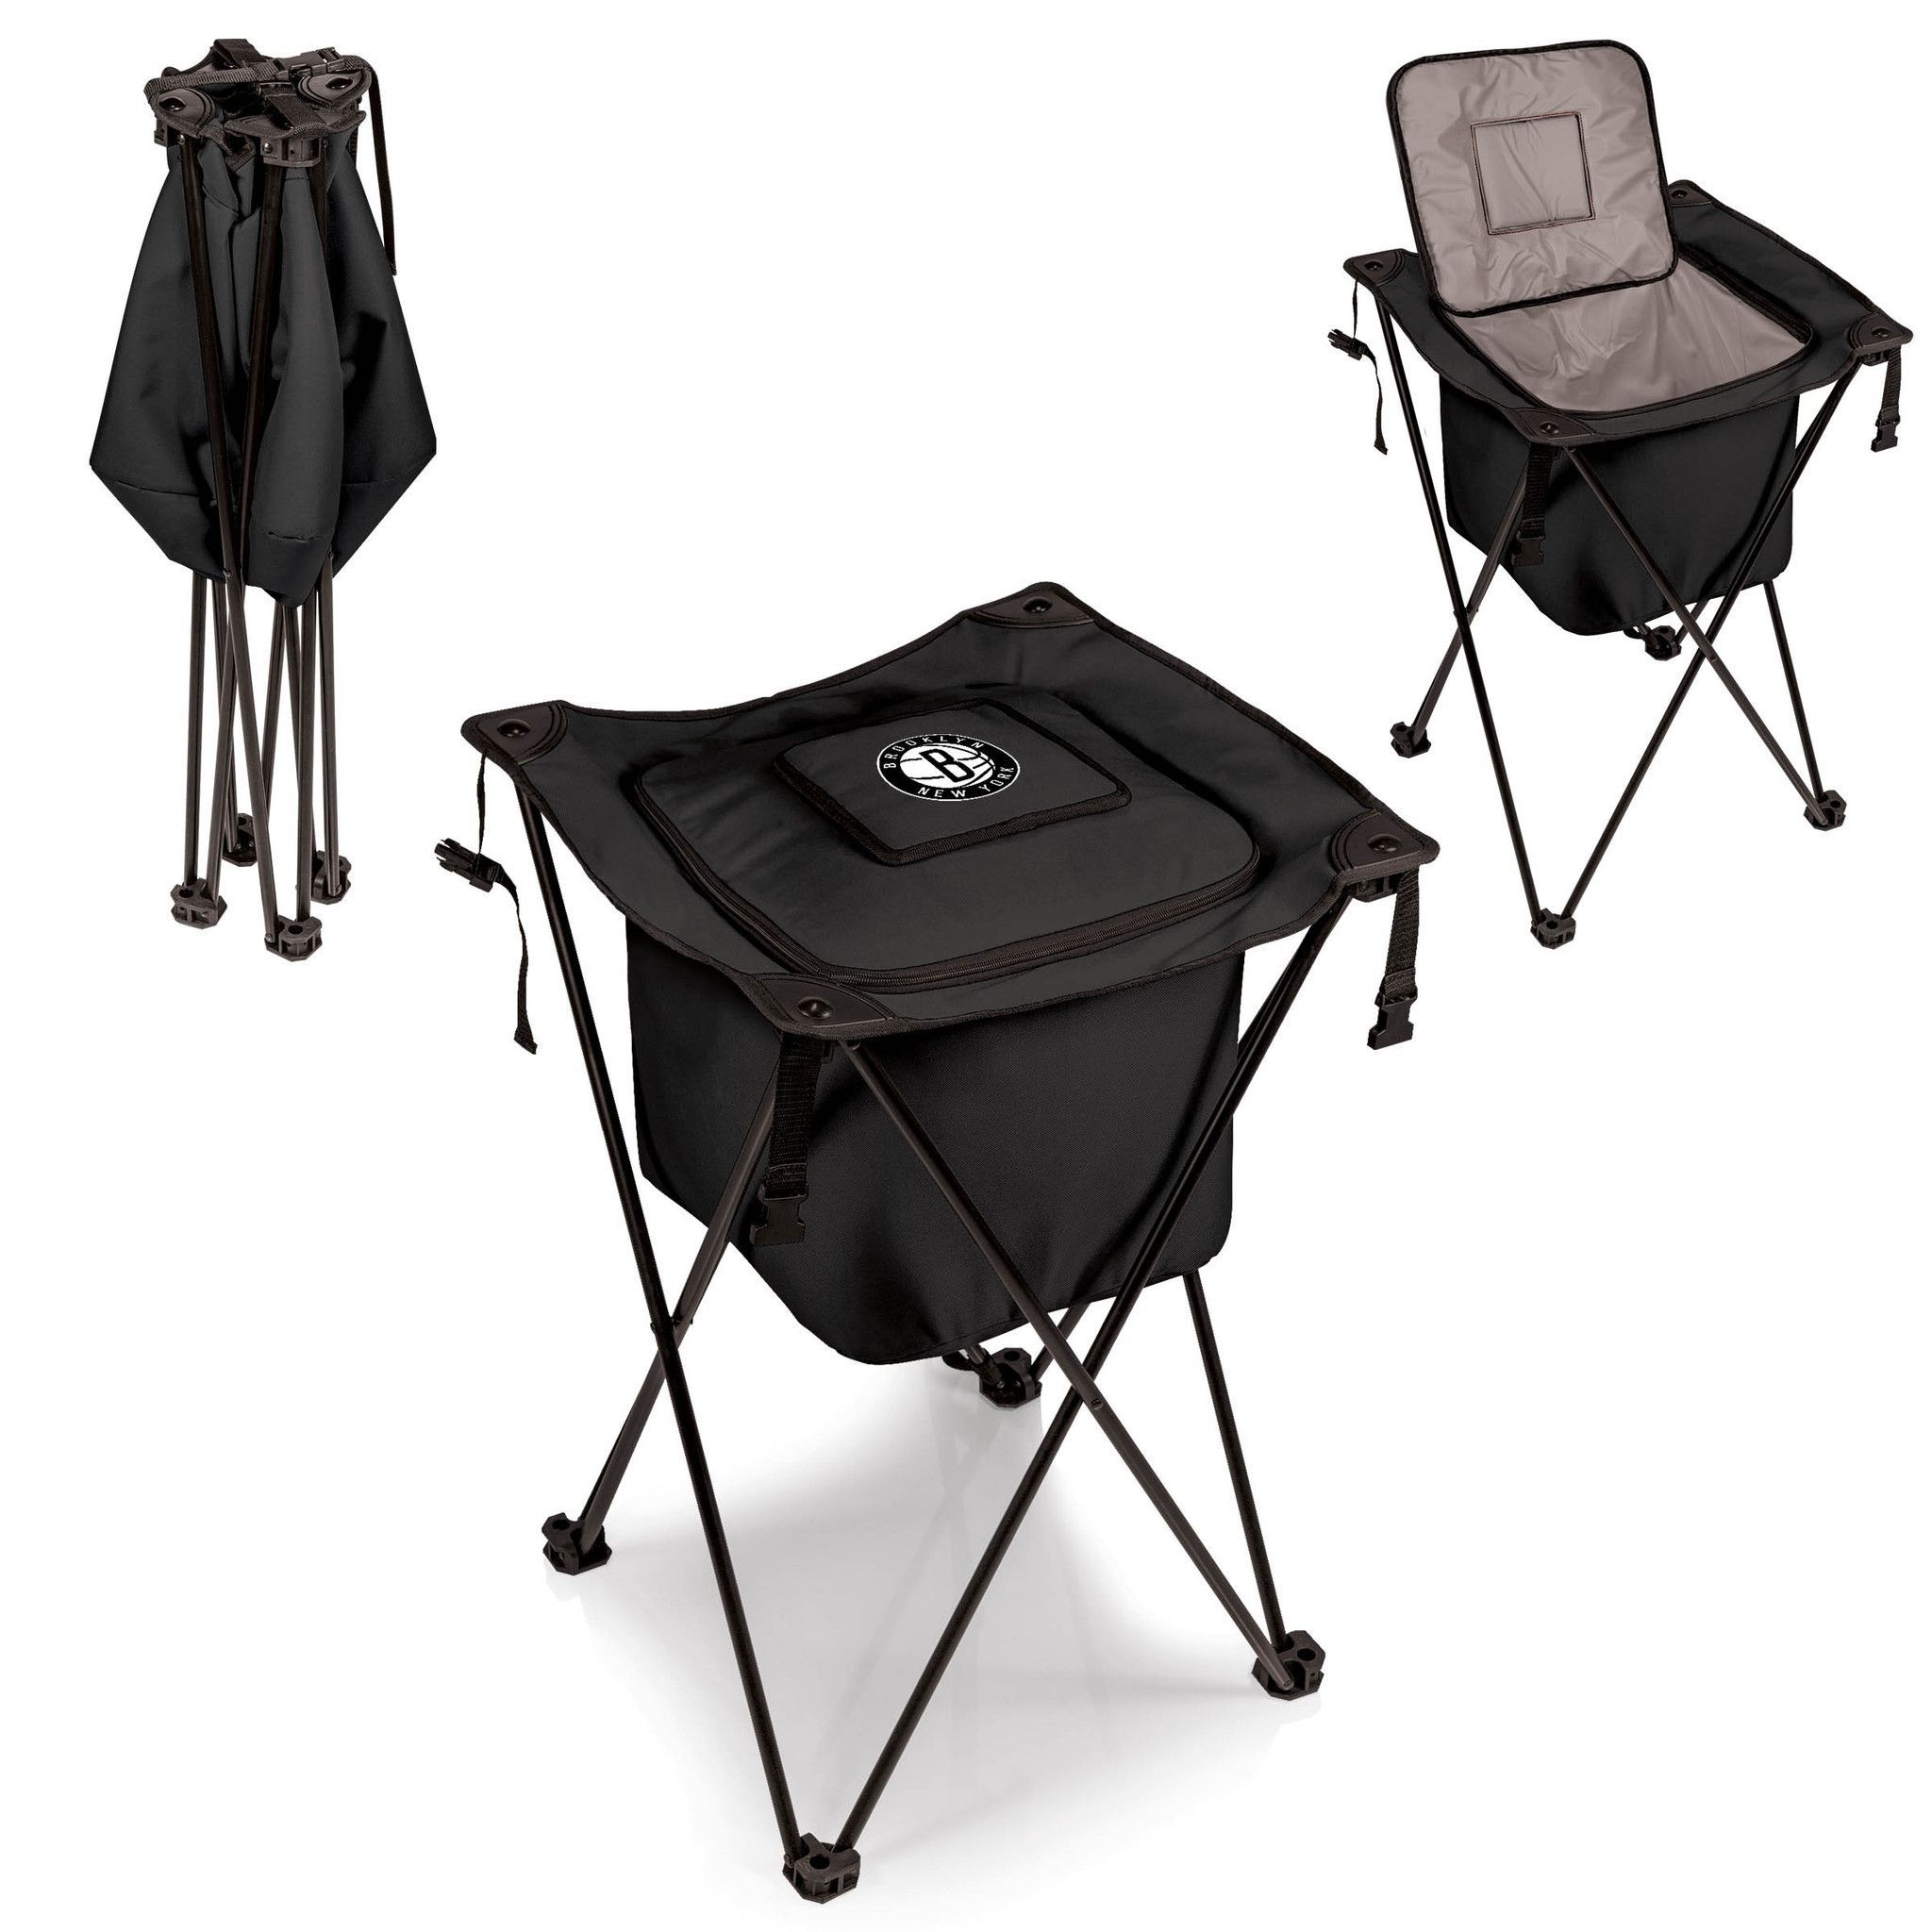 Brooklyn Nets Portable Cooler - Sidekick by Picnic Time